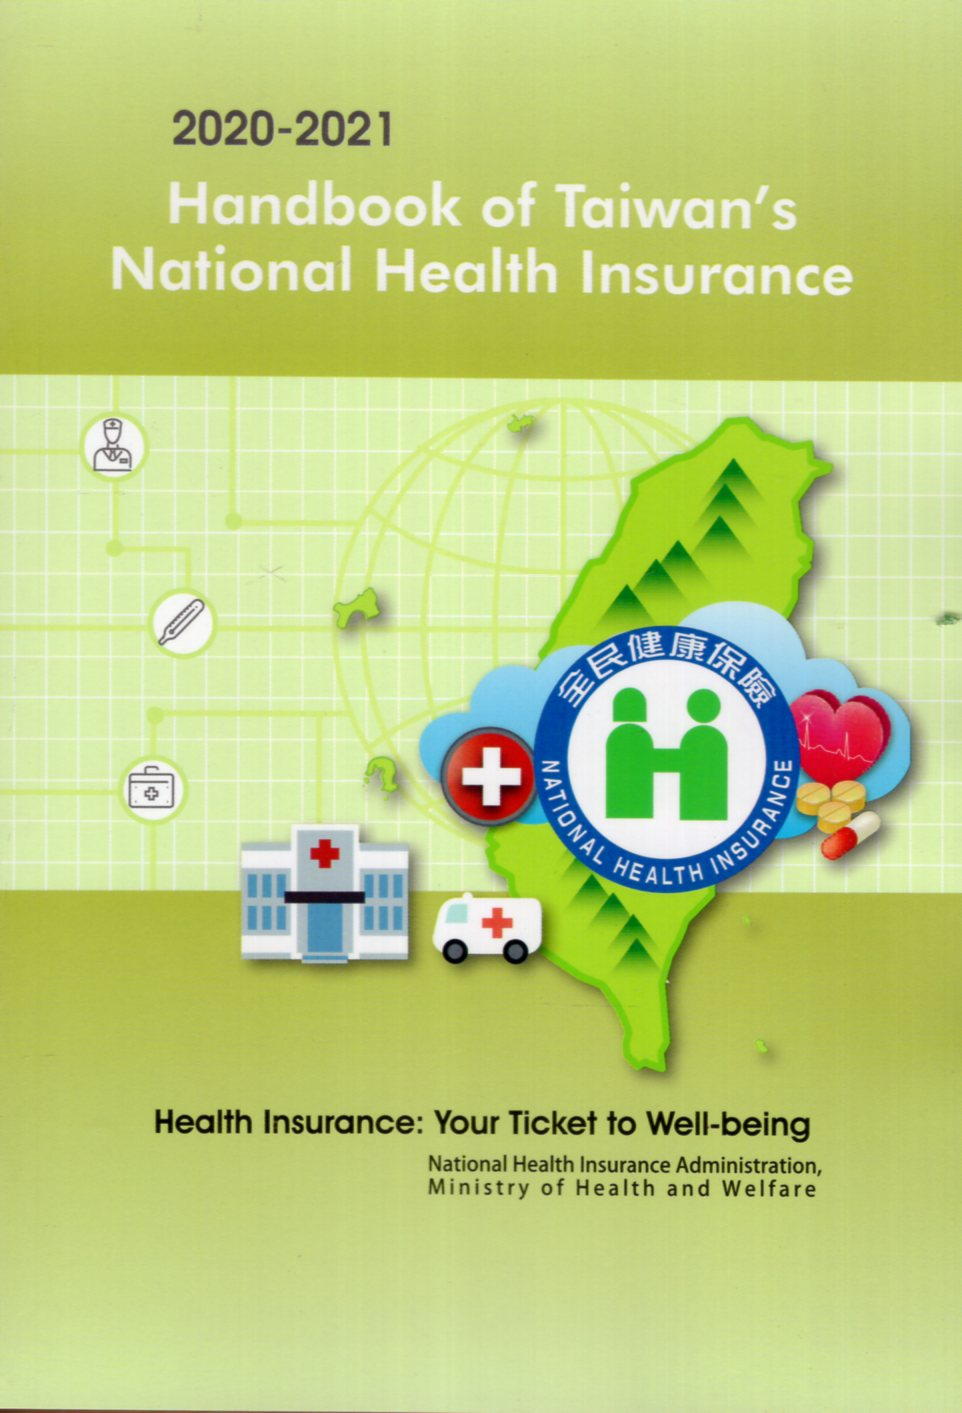 2019-2020 Handbook of Taiwan's National Health Insurance